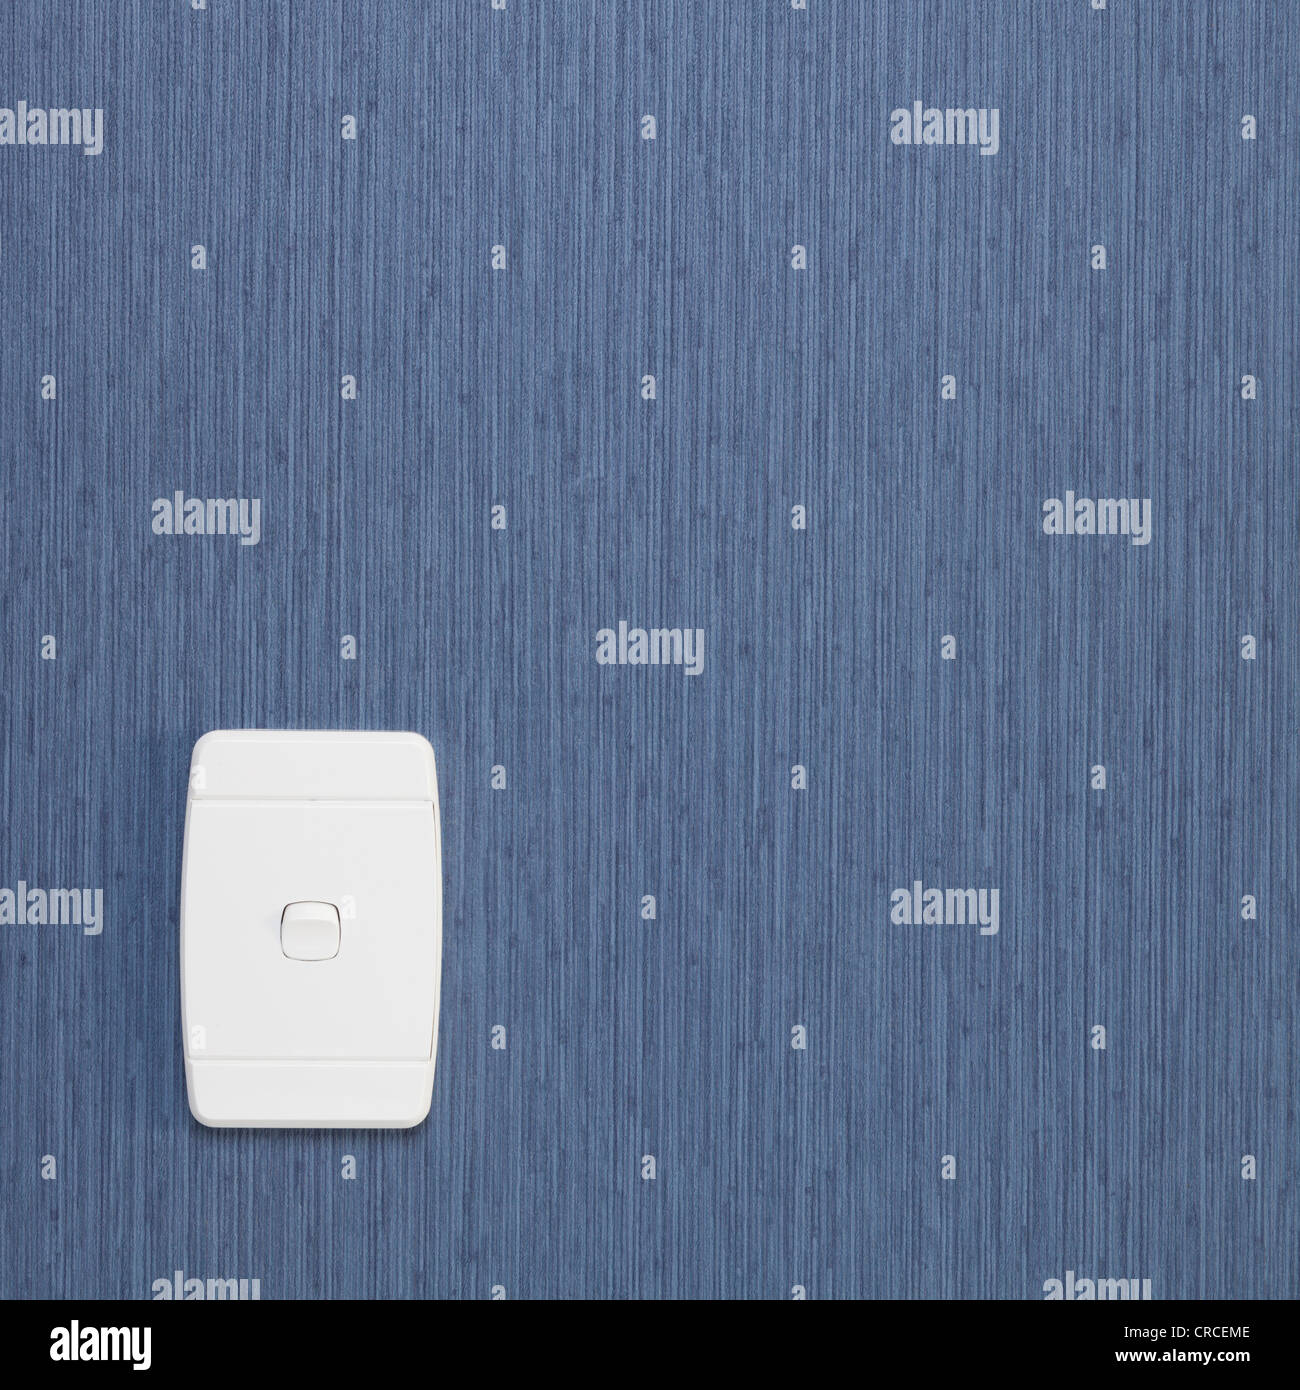 Single gang electrical light switch on wall with blue textured wallpaper, square, copy space. - Stock Image